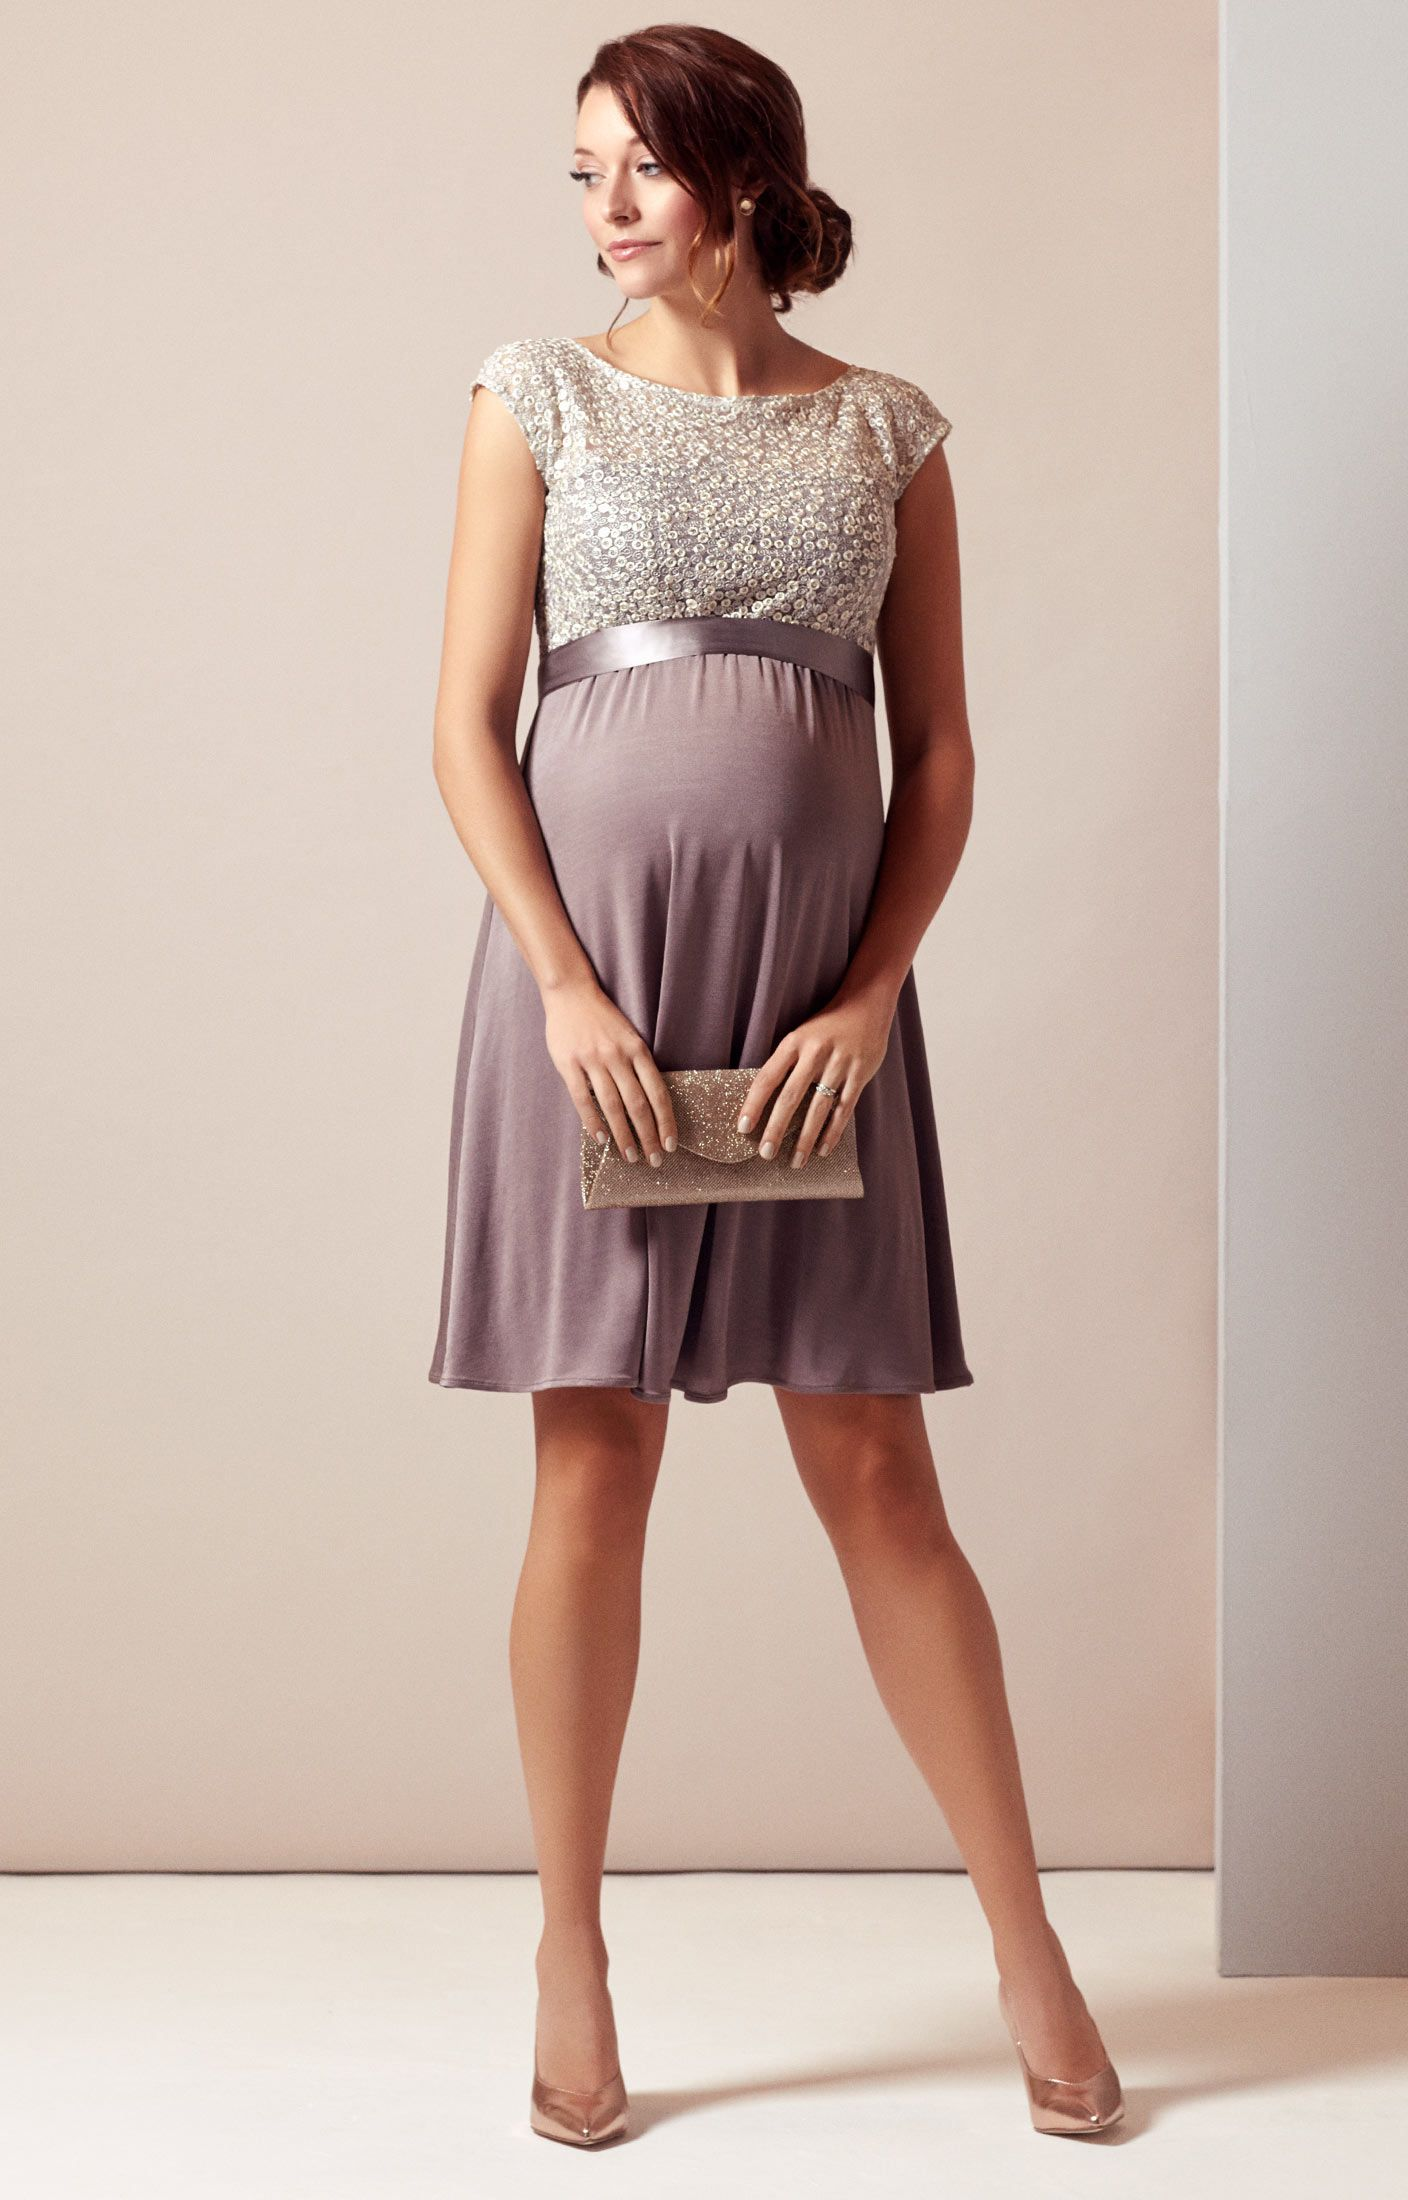 d4c3183f45679 Rich, taupe tones give our knee-length Mia maternity dress a deliciously  stylish appeal to work through the season's invites with ease.